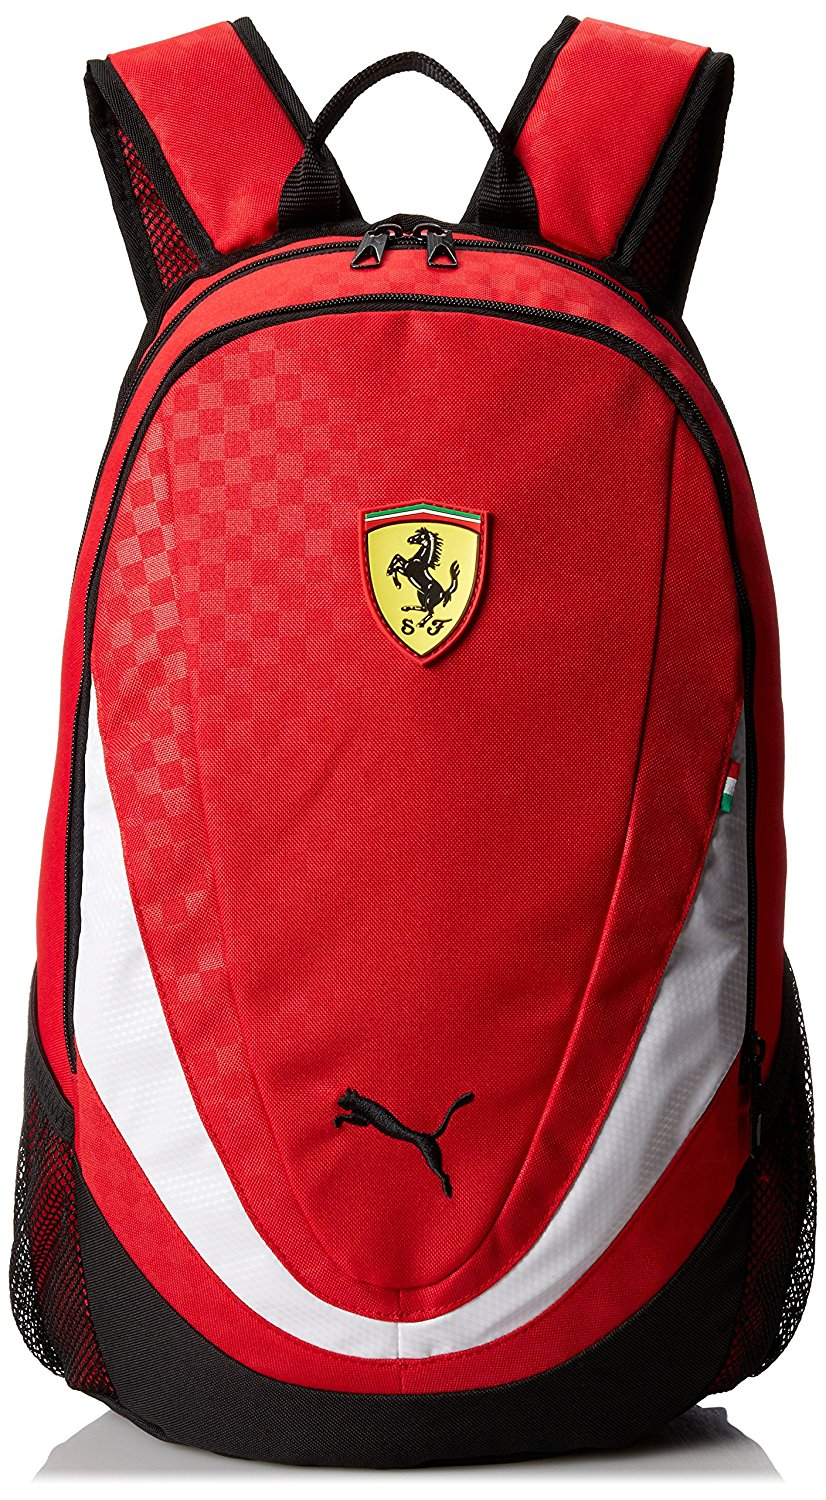 cb5023e0d2c5 Get Quotations · PUMA Men s Ferrari Replica Backpack